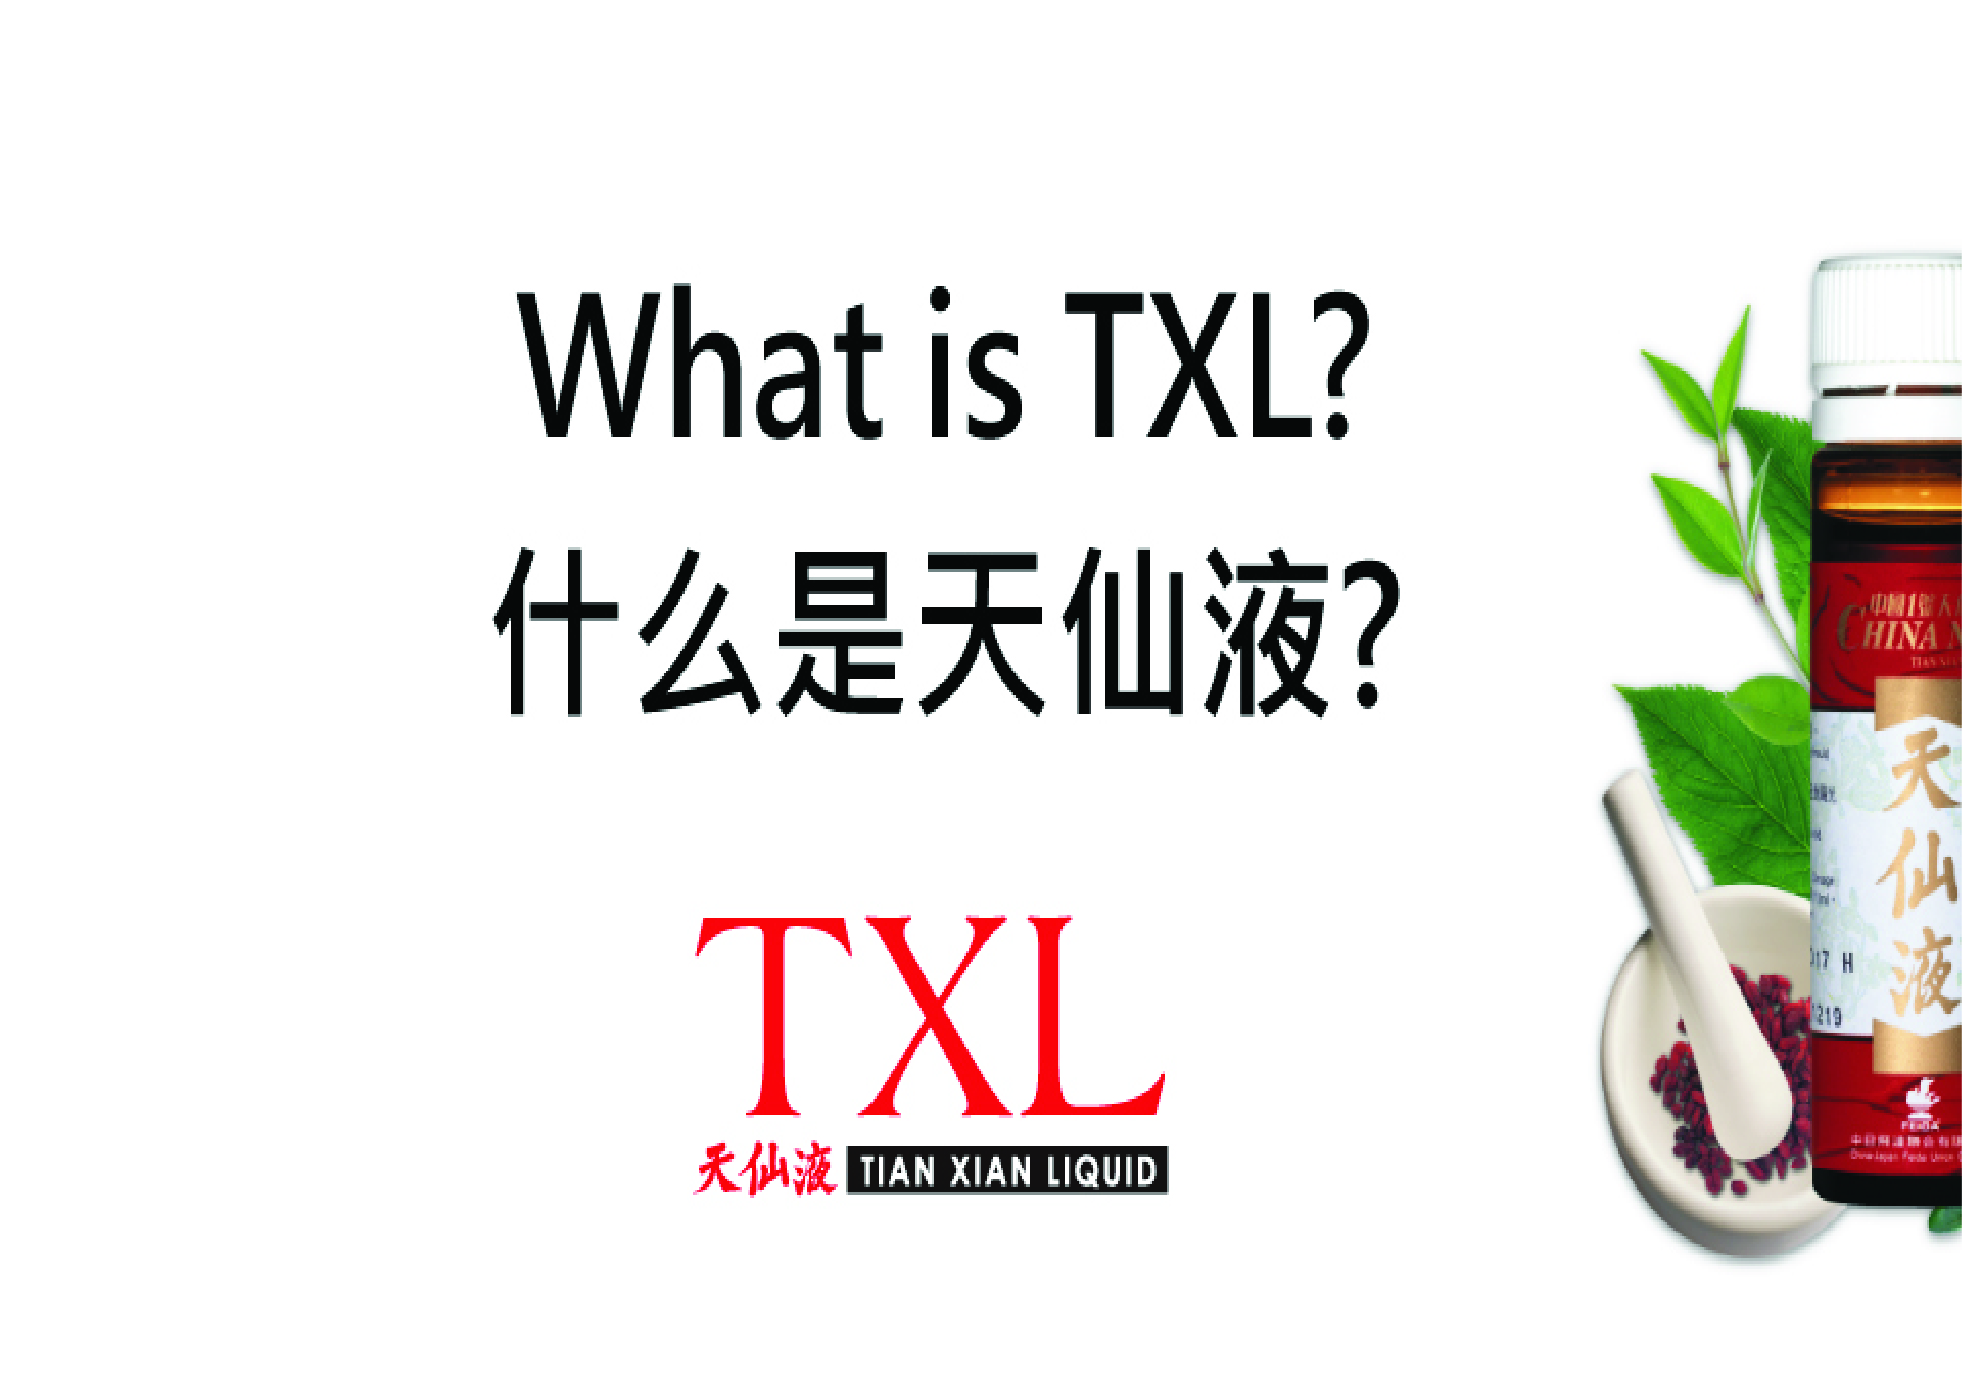 What is TXL?